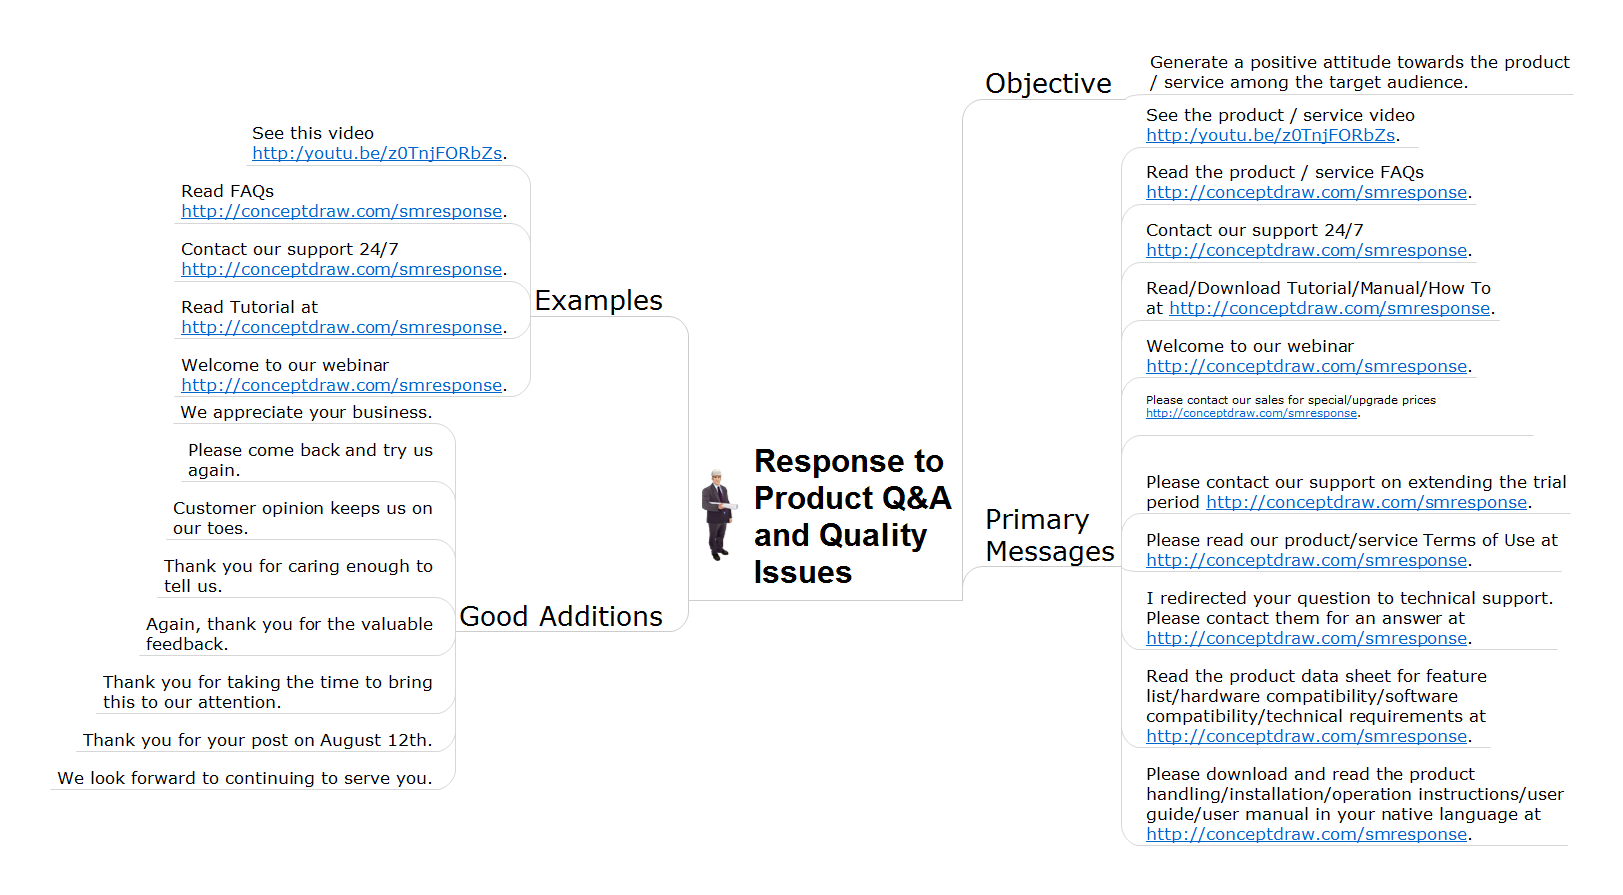 Action mindmap - Q&A quality issues